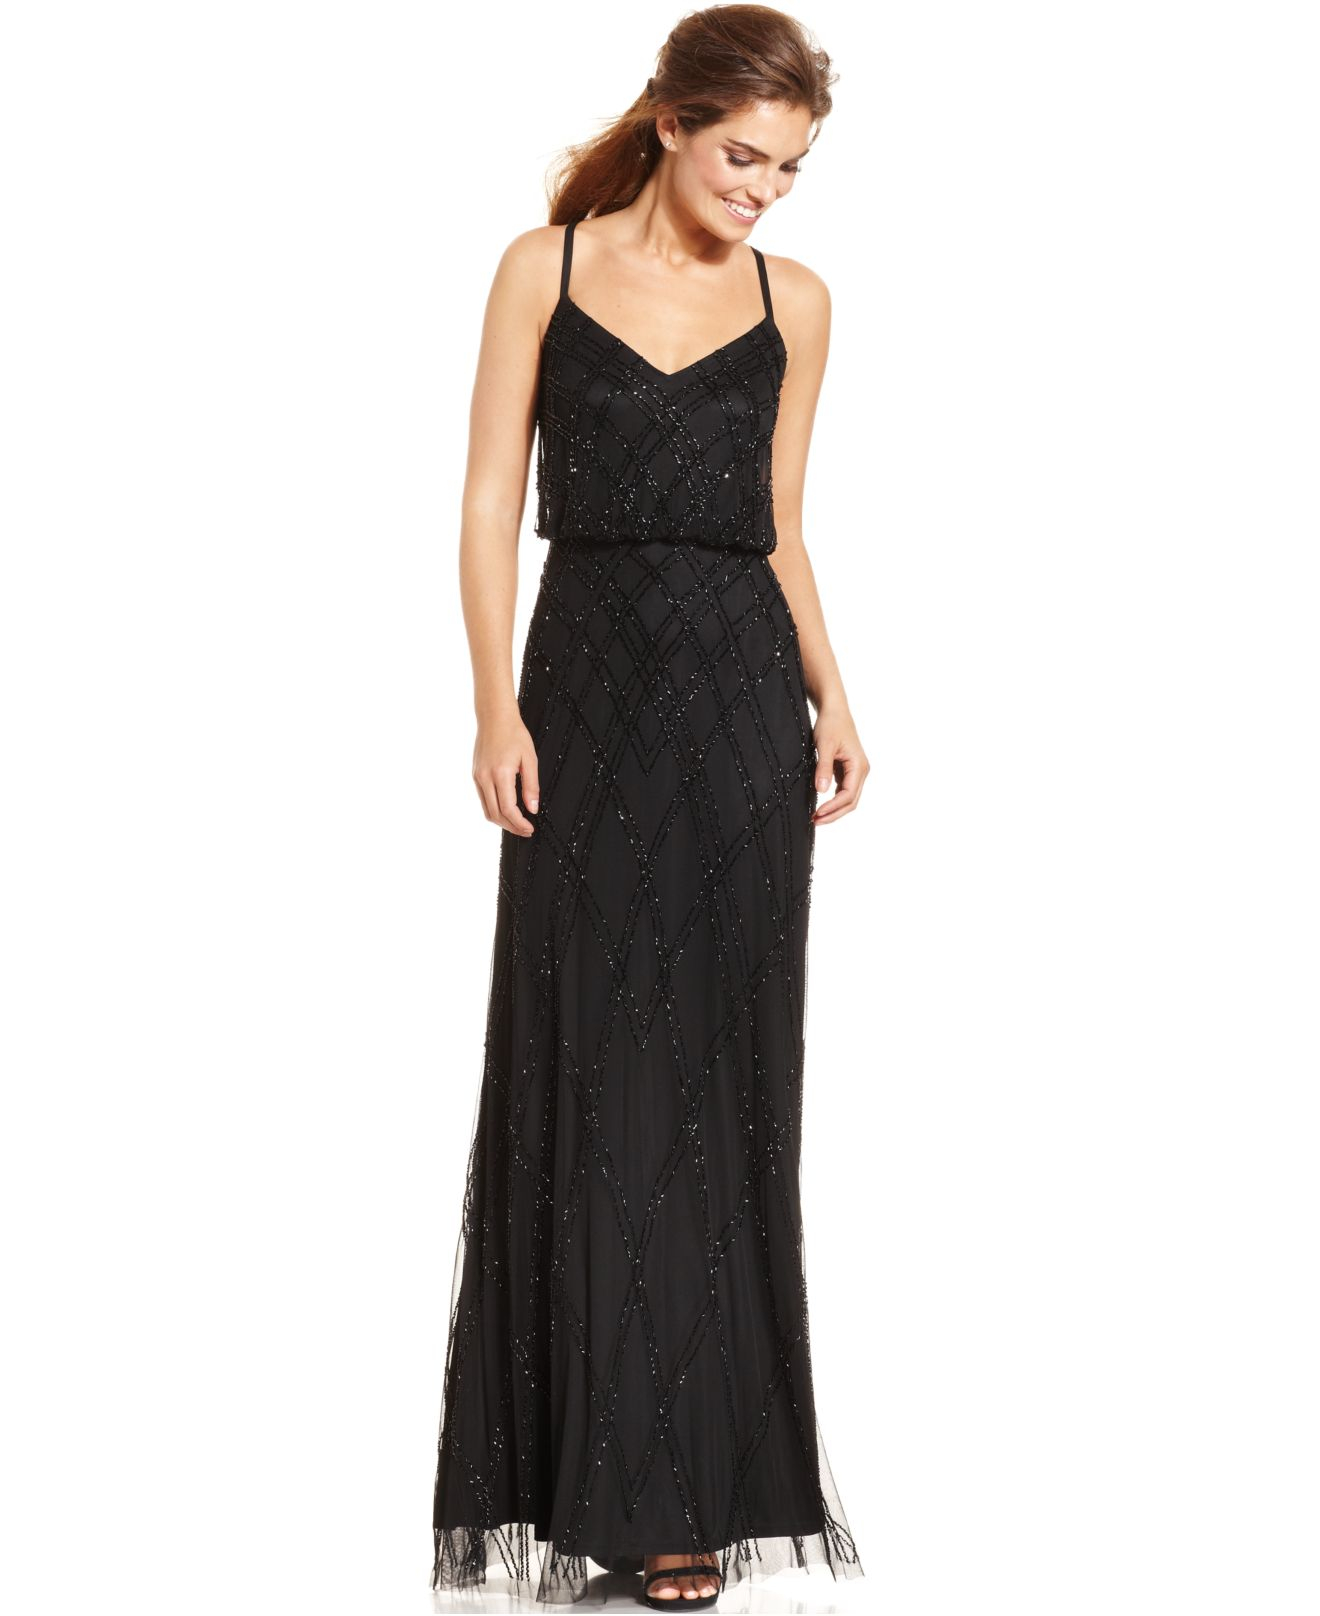 Lyst - Adrianna Papell Sleeveless Beaded Blouson Gown in Black